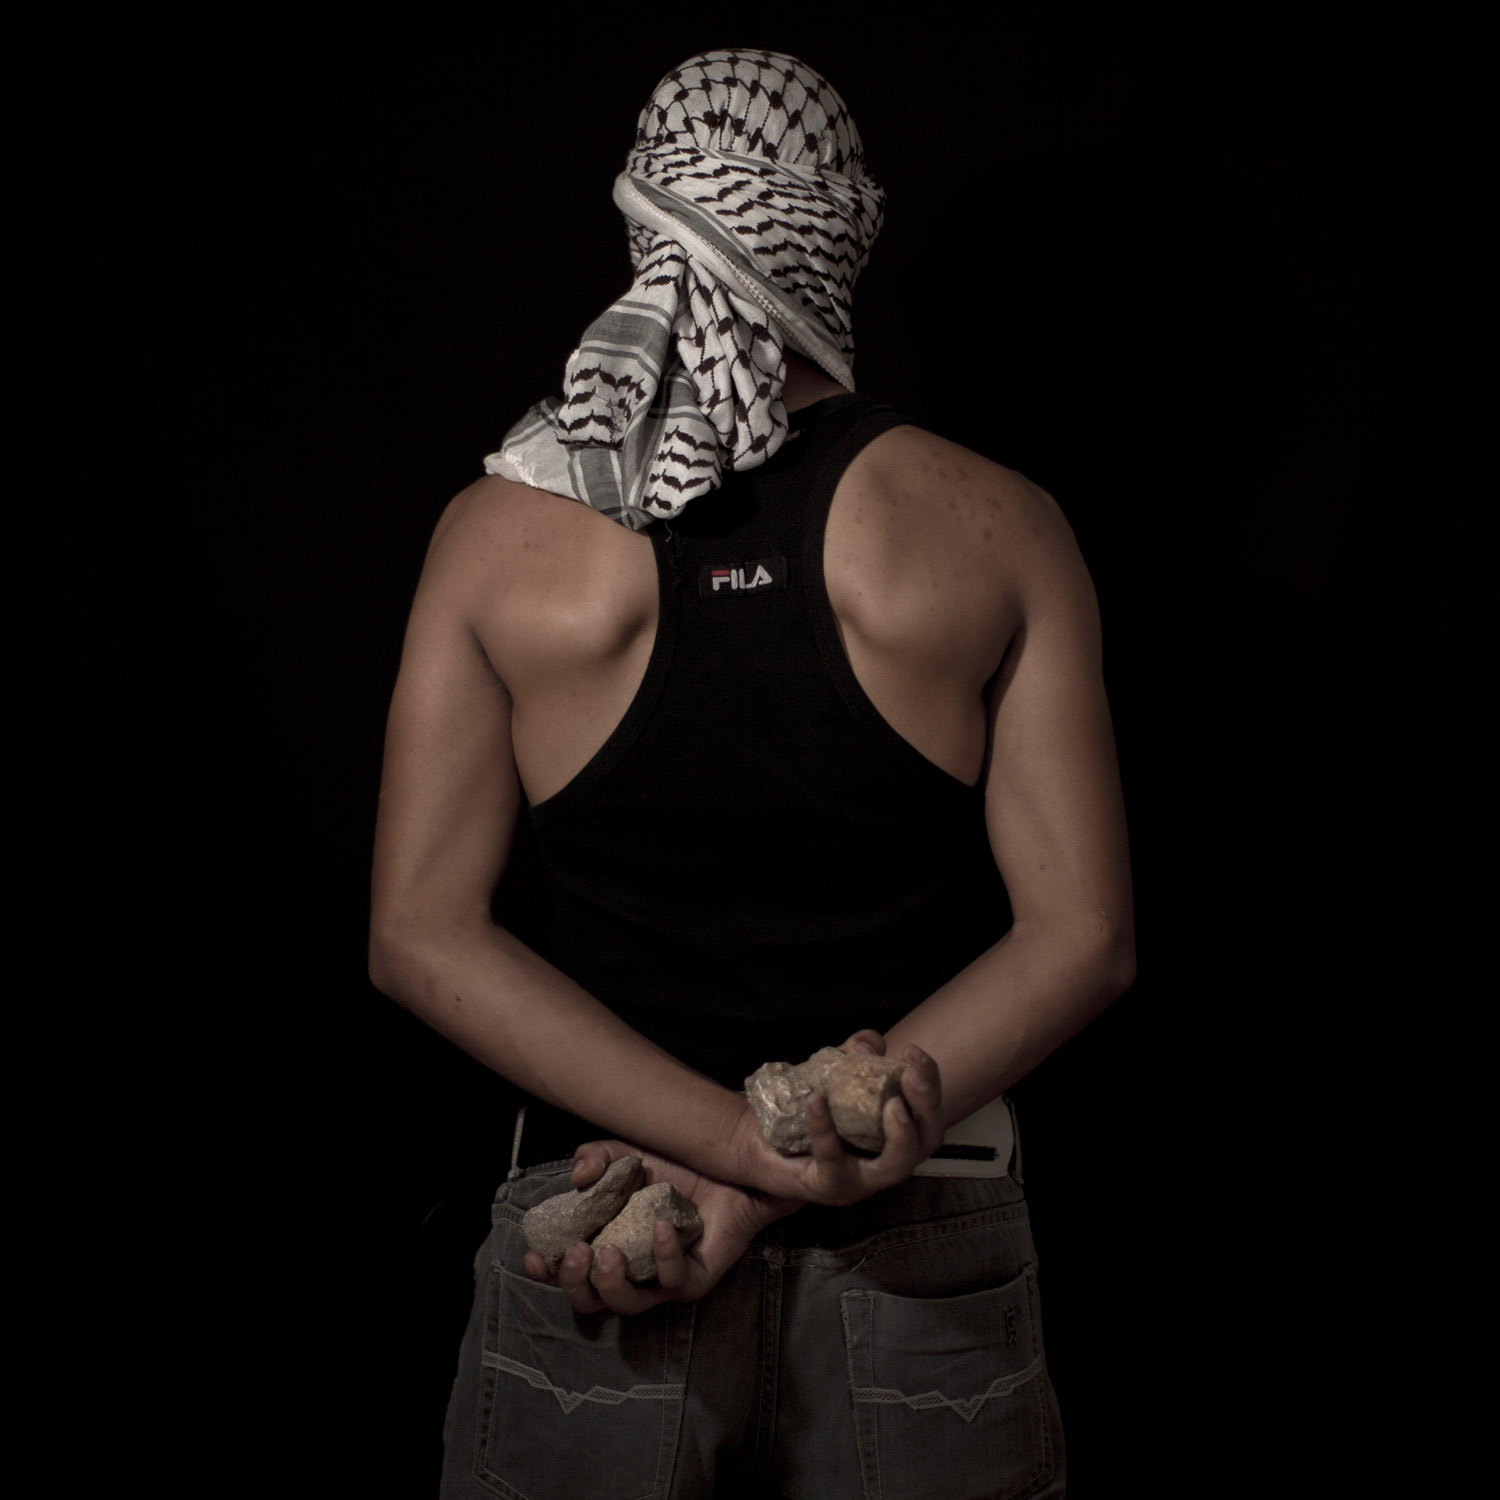 Portrait of a Palestinian stone thrower in the West Bank village of Bilin, near Ramallah. June 13, 2012.